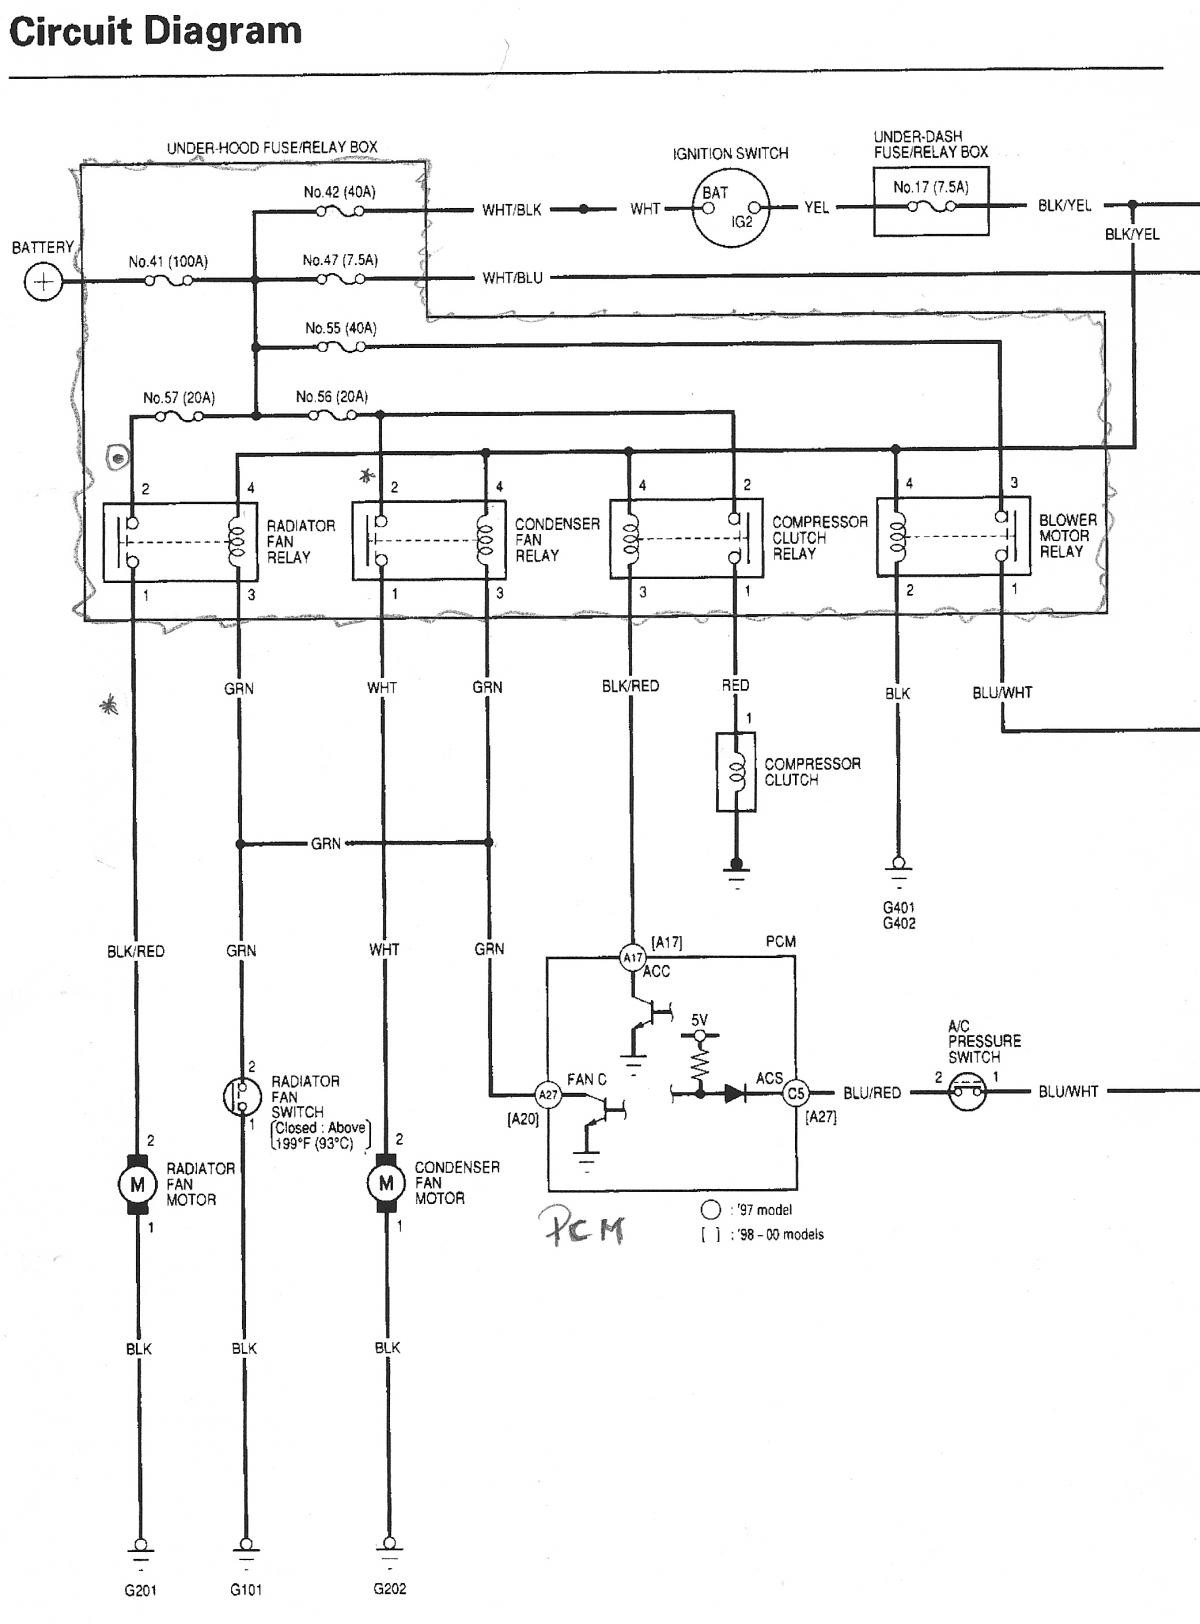 Honda Element Engine Diagram | My Wiring DIagram